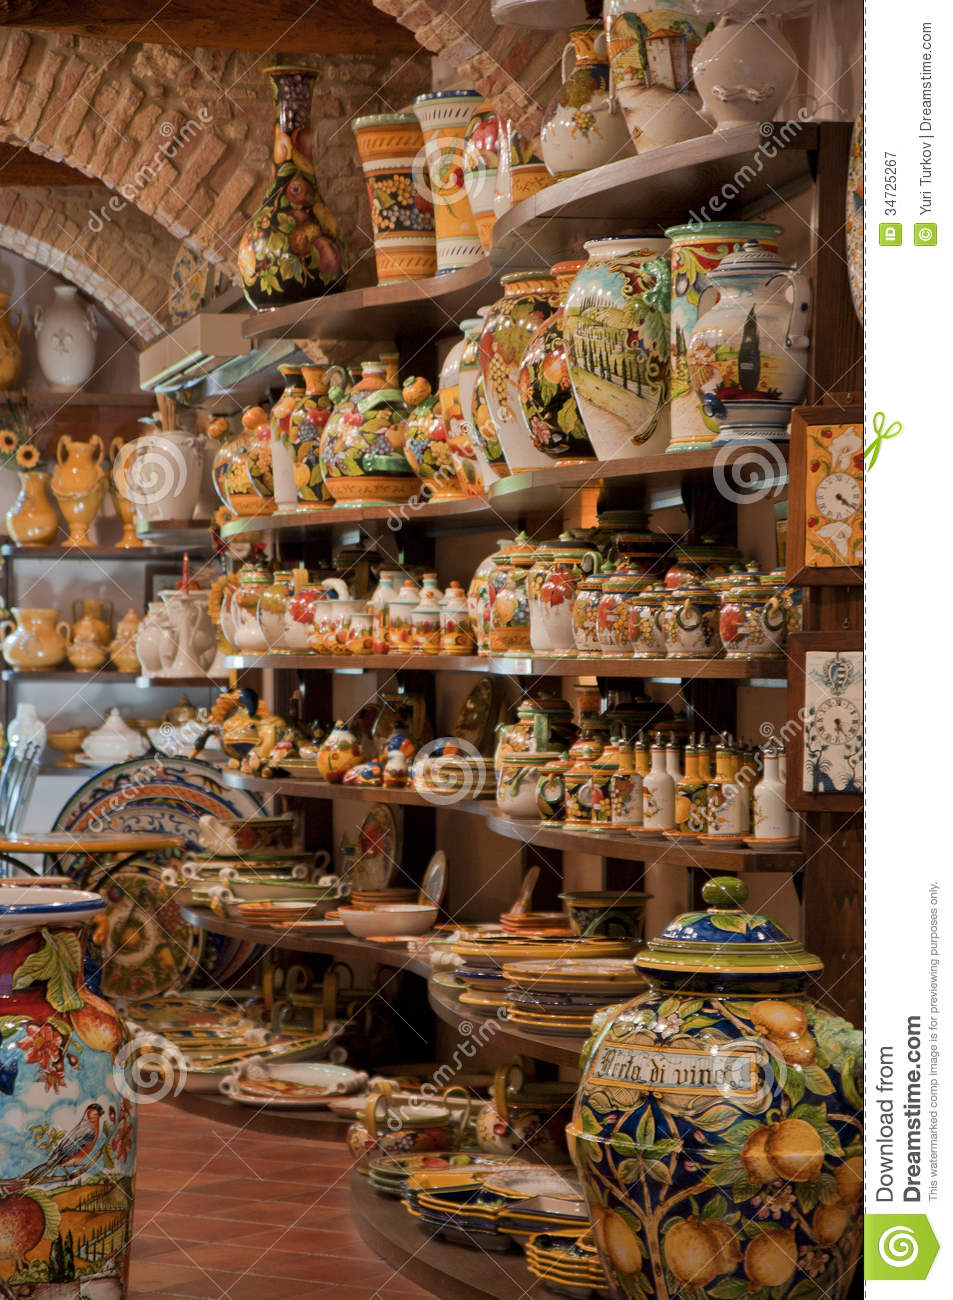 Art Store At The Art Store Stock Image Image Of Made Vase Shopping 34725267